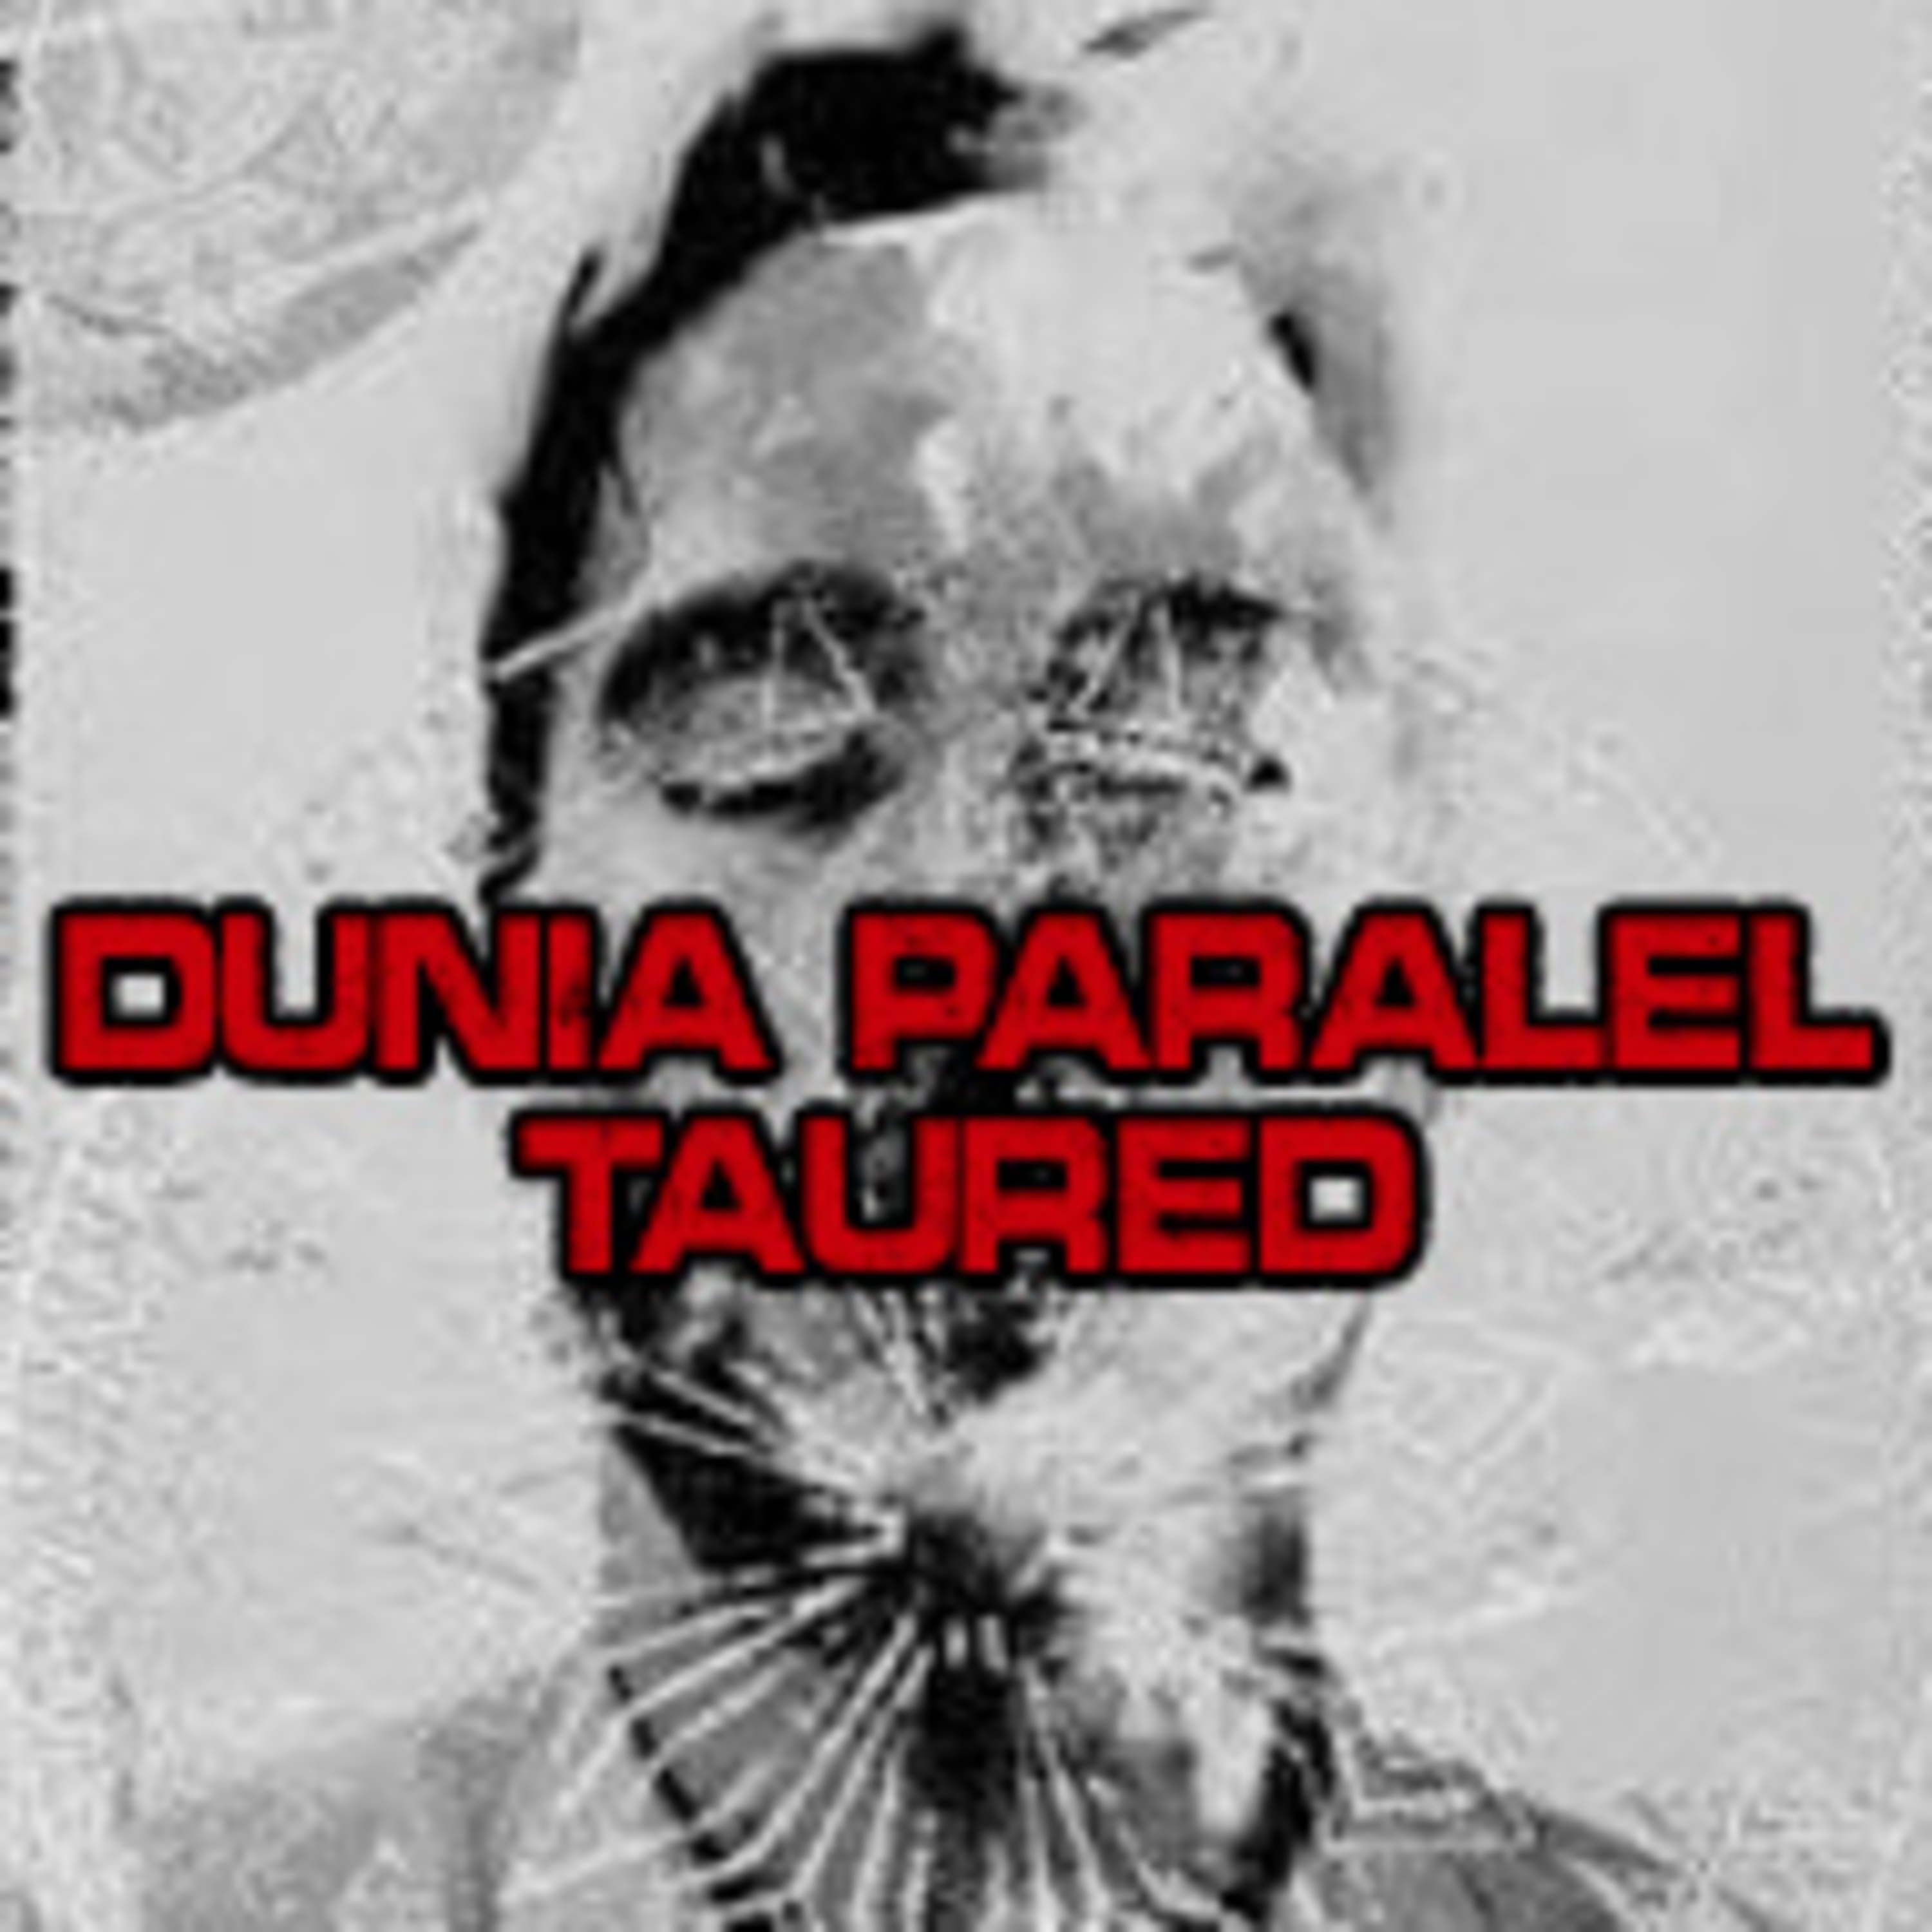 Dunia Paralel Taured - Unsolved Case, Jepang